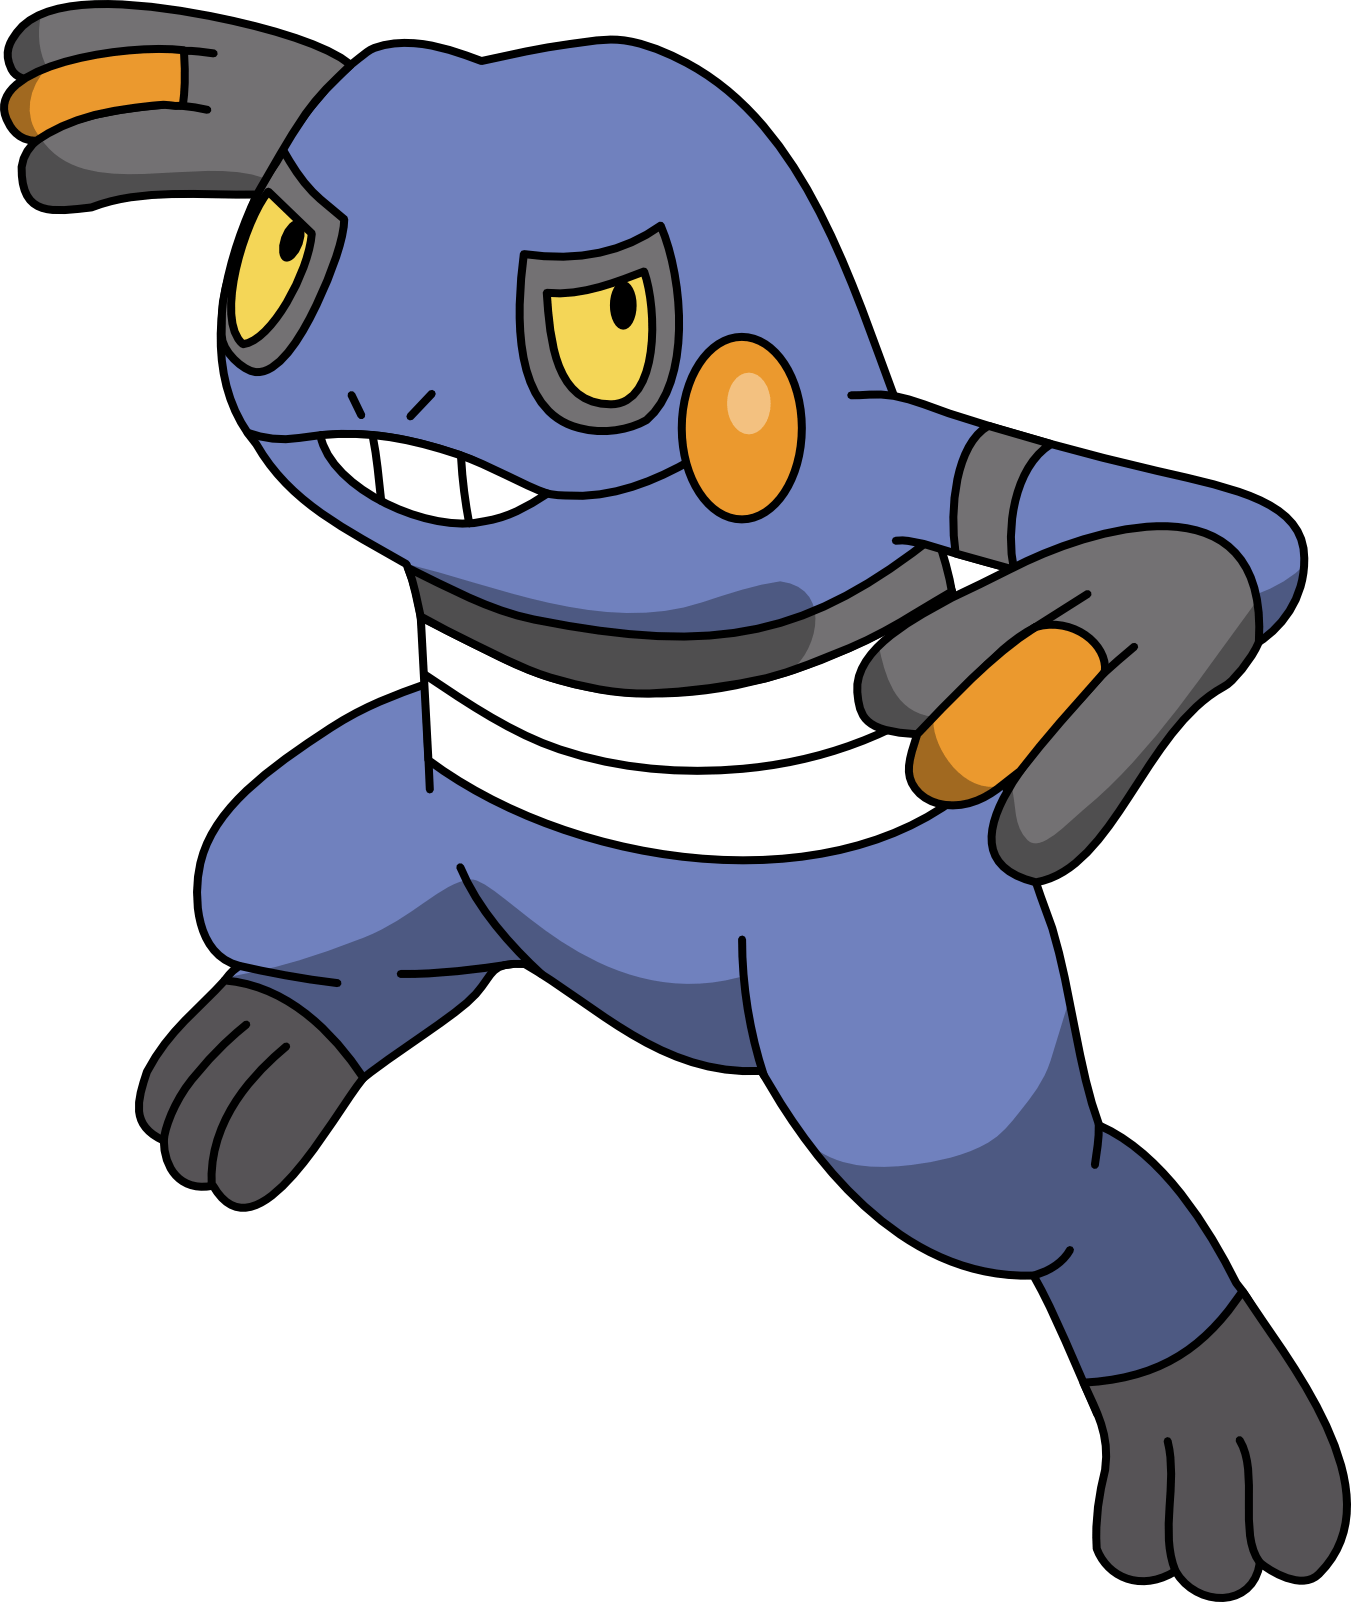 Croagunk by Mighty355